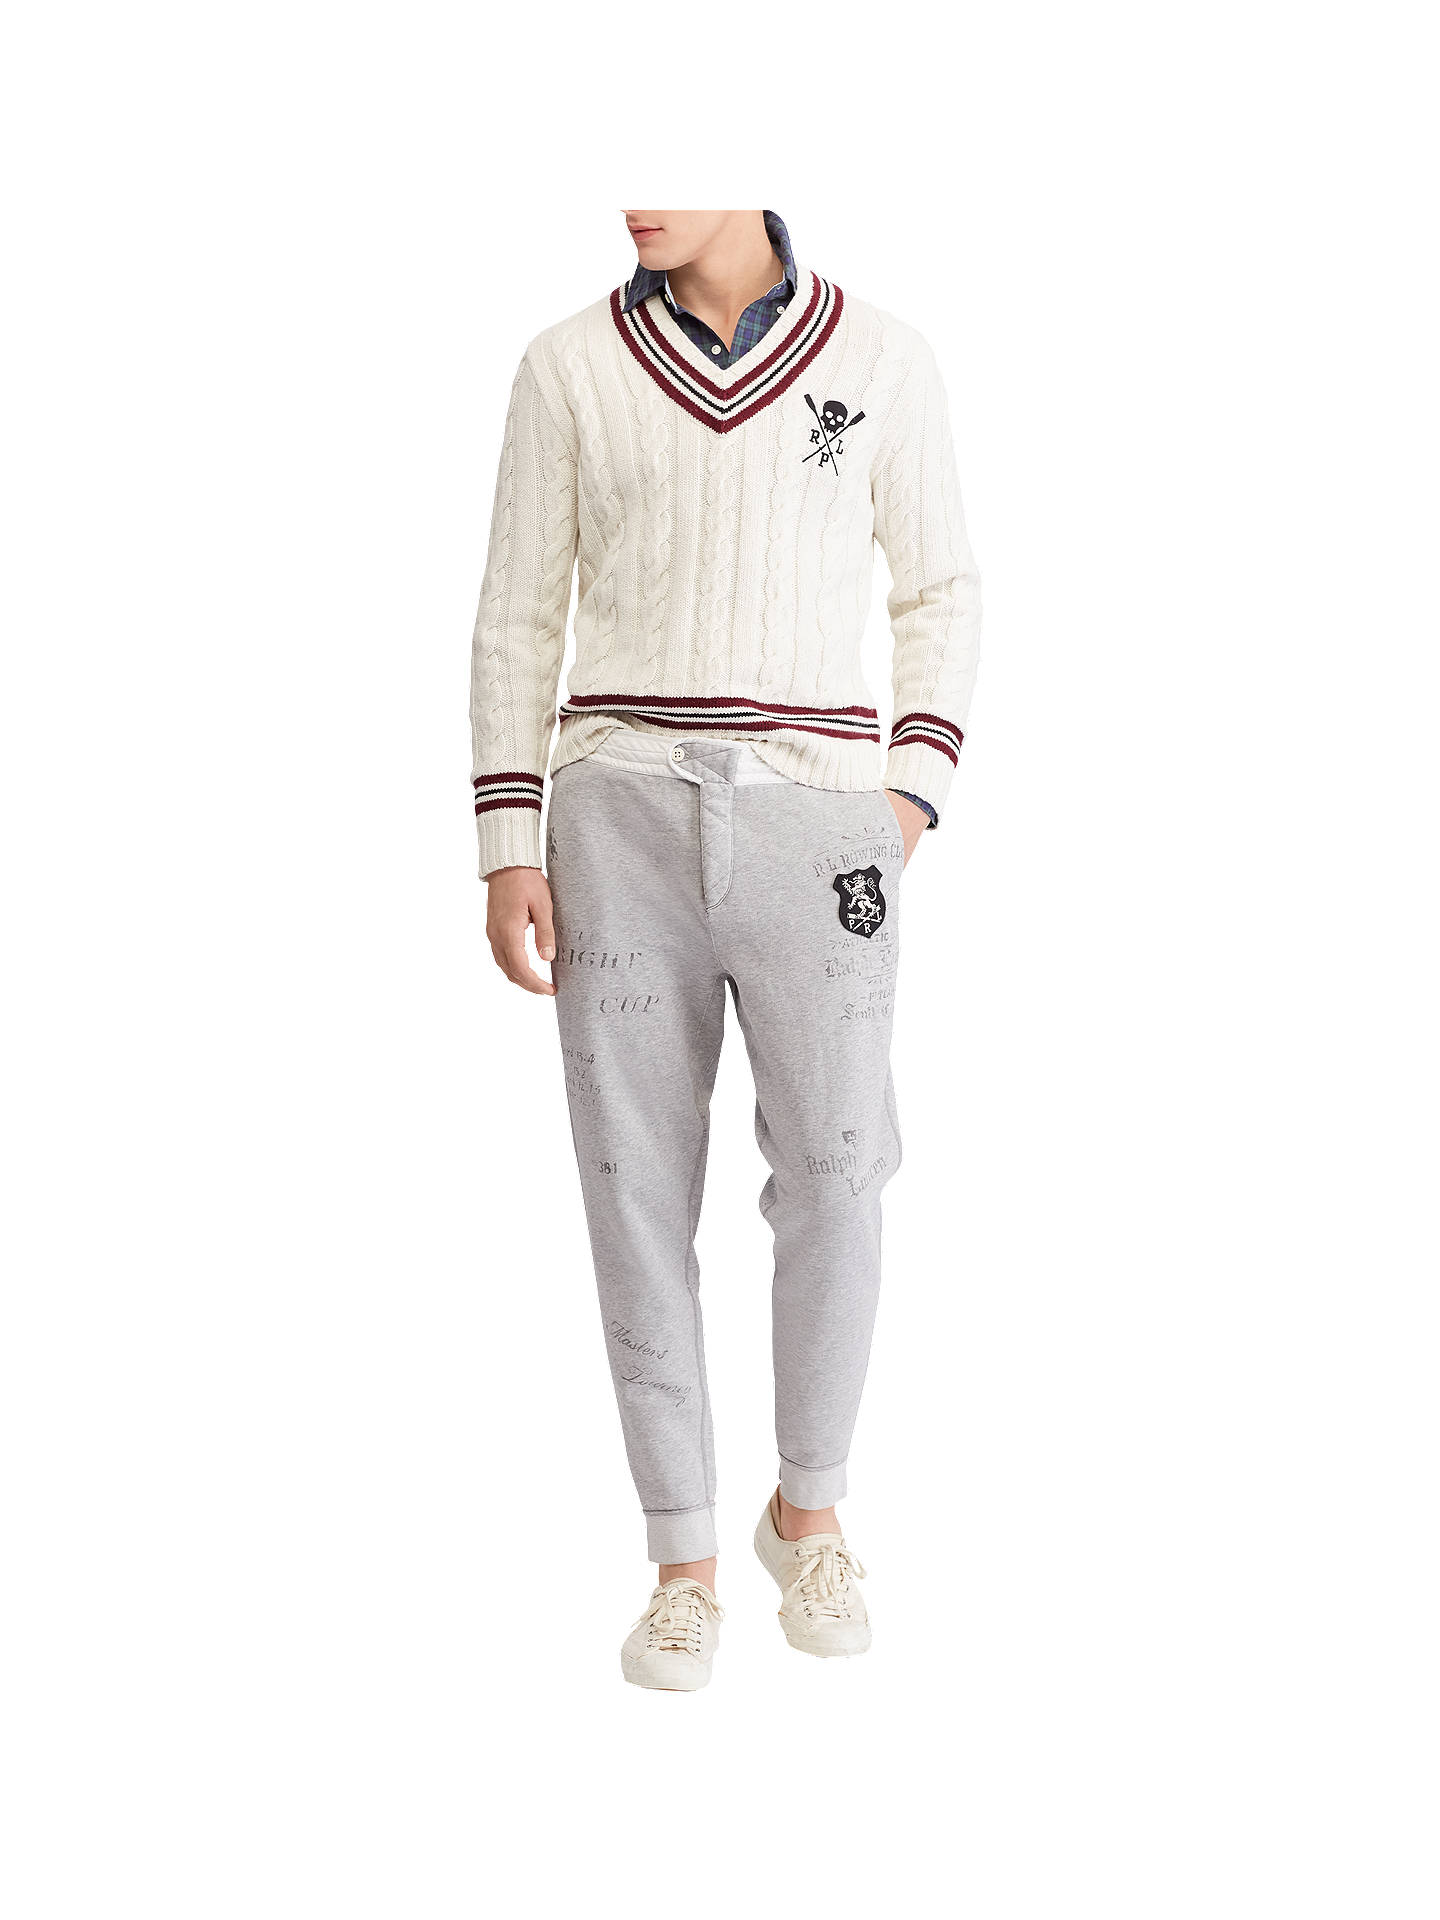 Buy Polo Ralph Lauren Cricket Cable Knit Jumper, Cream/Black, M Online at johnlewis.com